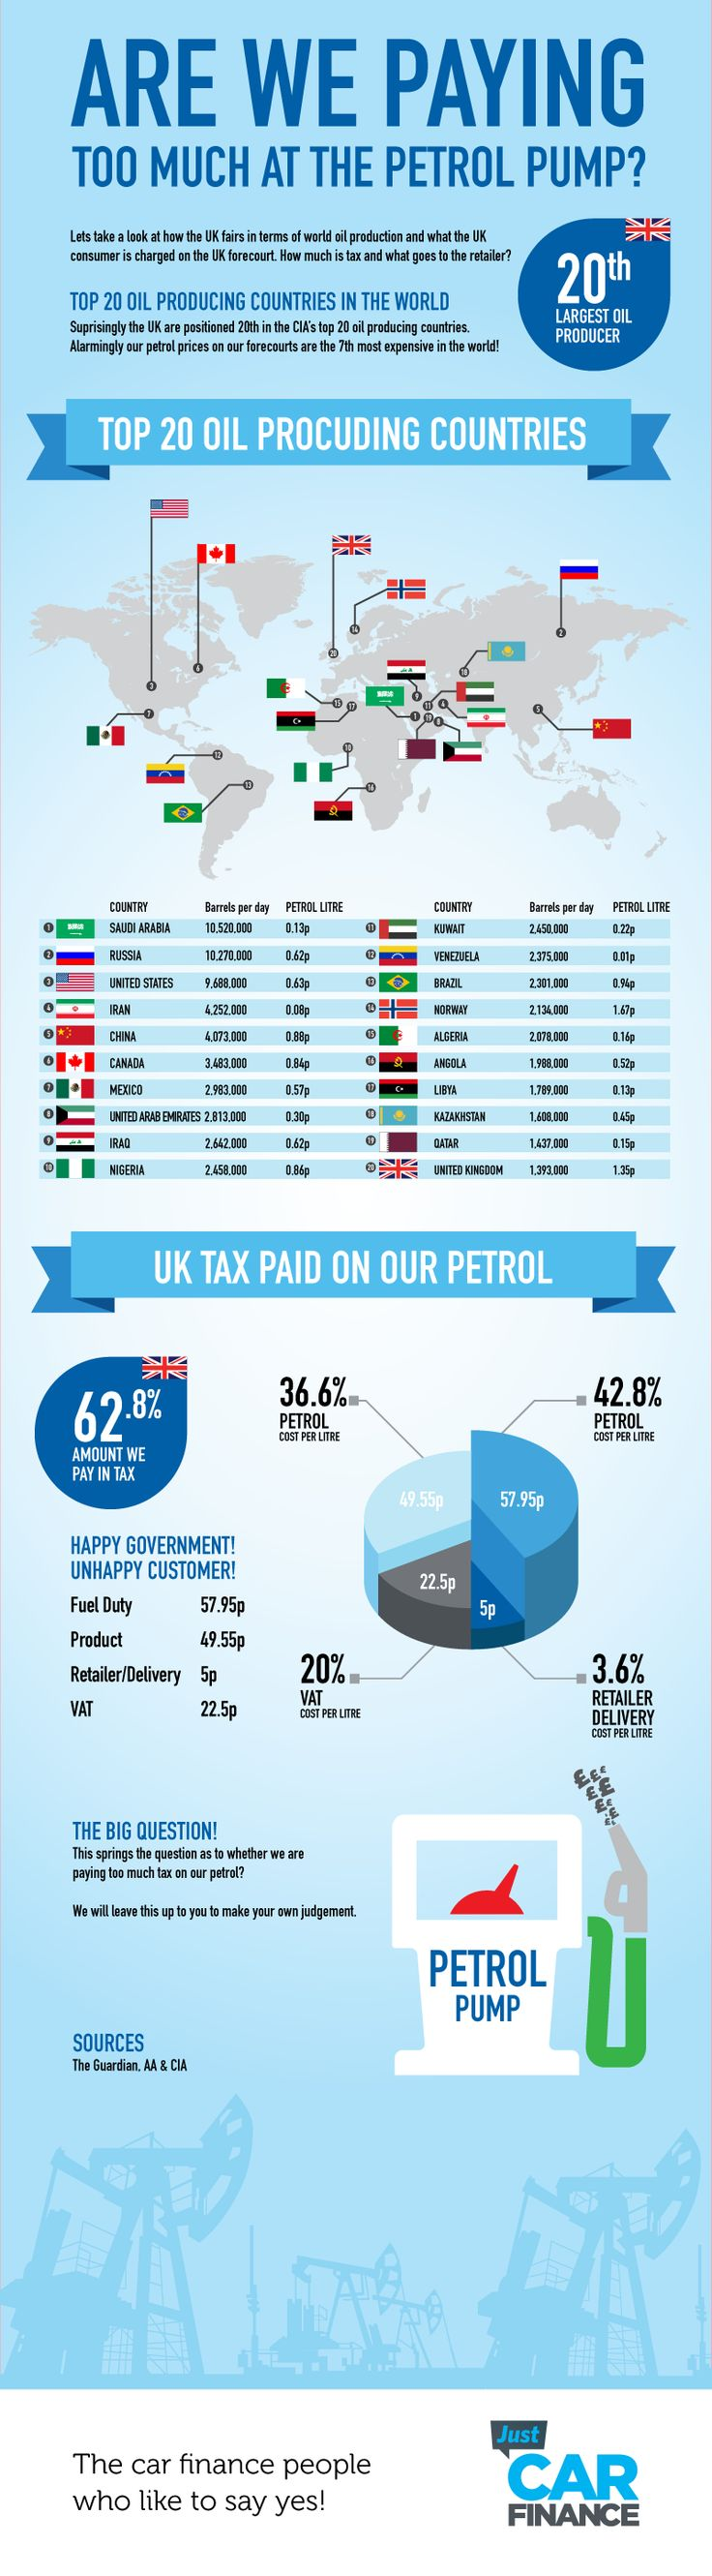 Just car finance review petrol price of the uk and how our oil output compares to